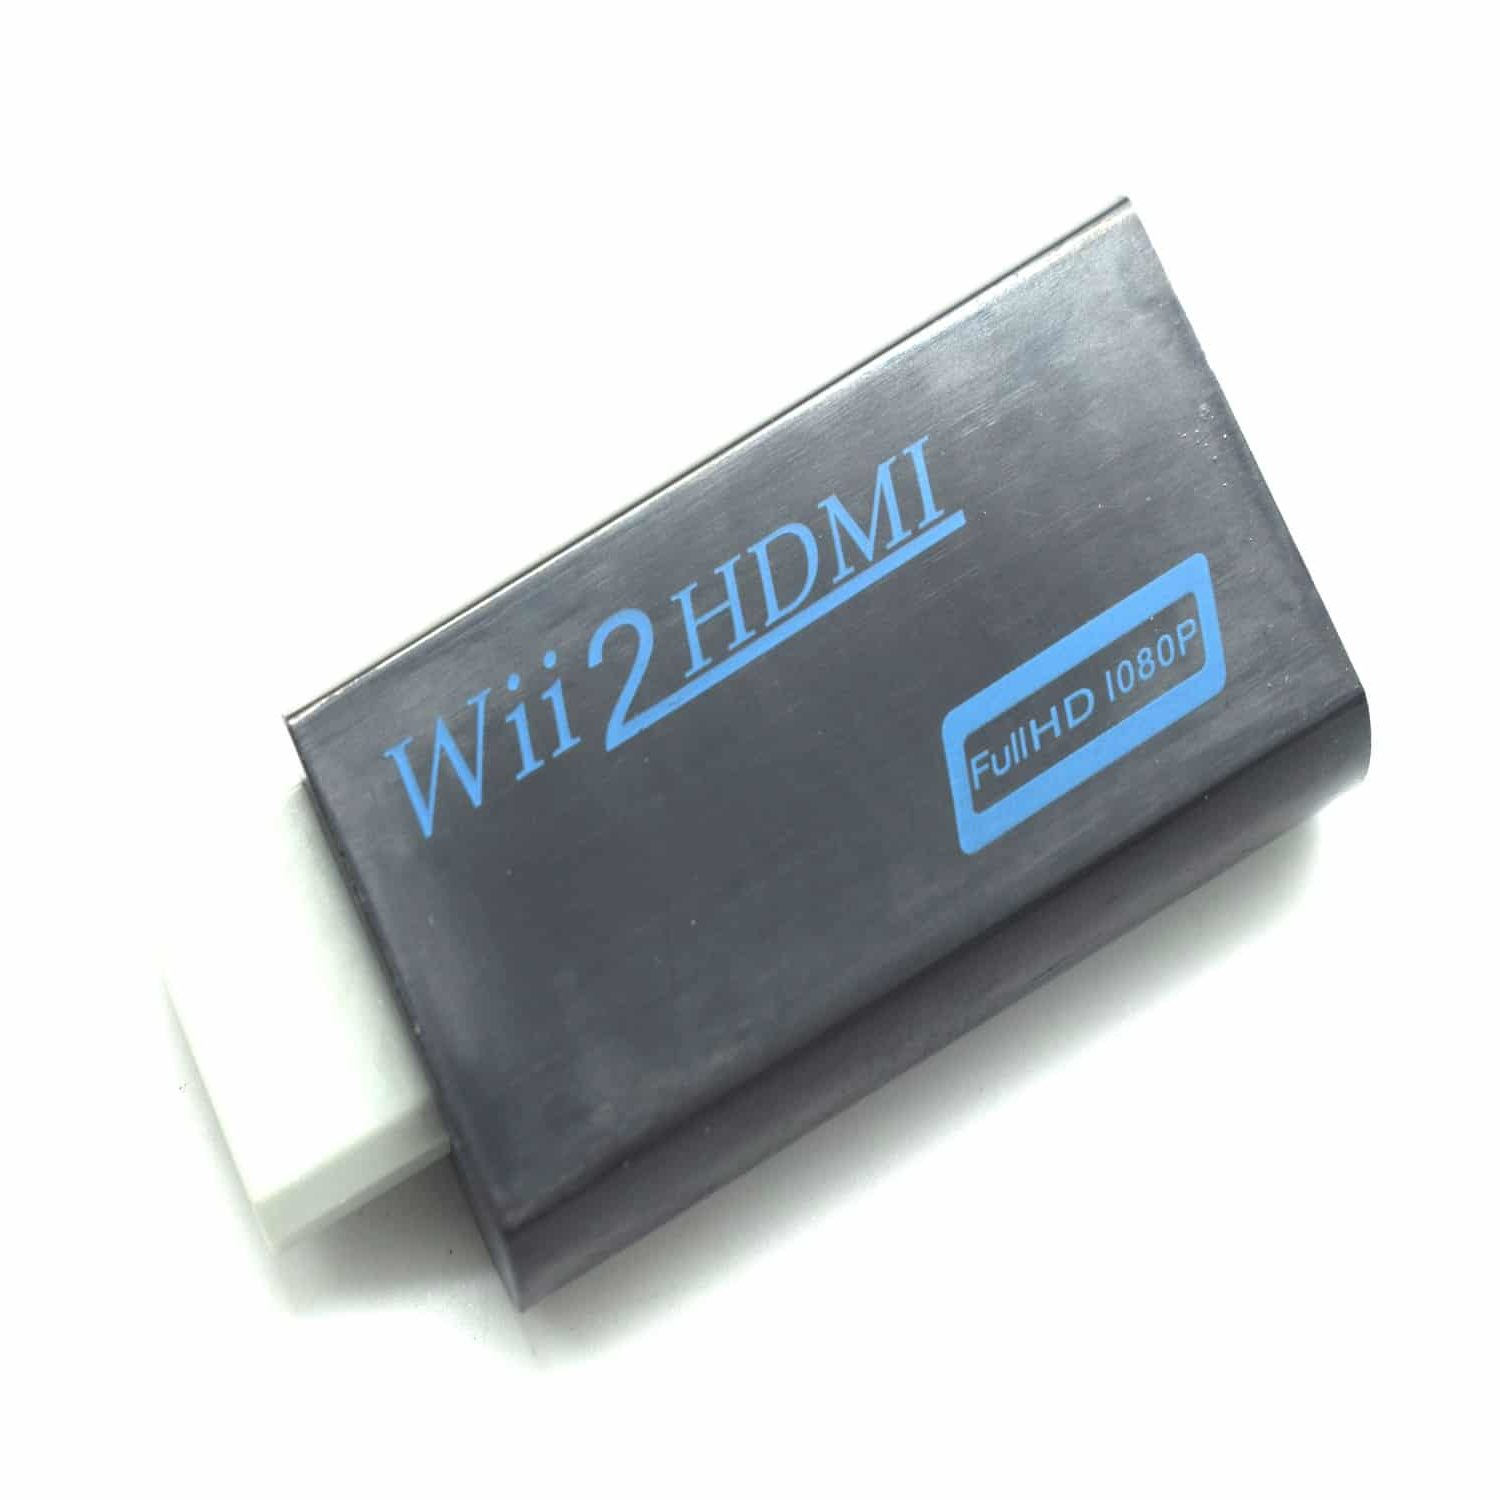 Wii to HDMI 1080p Adapter Black